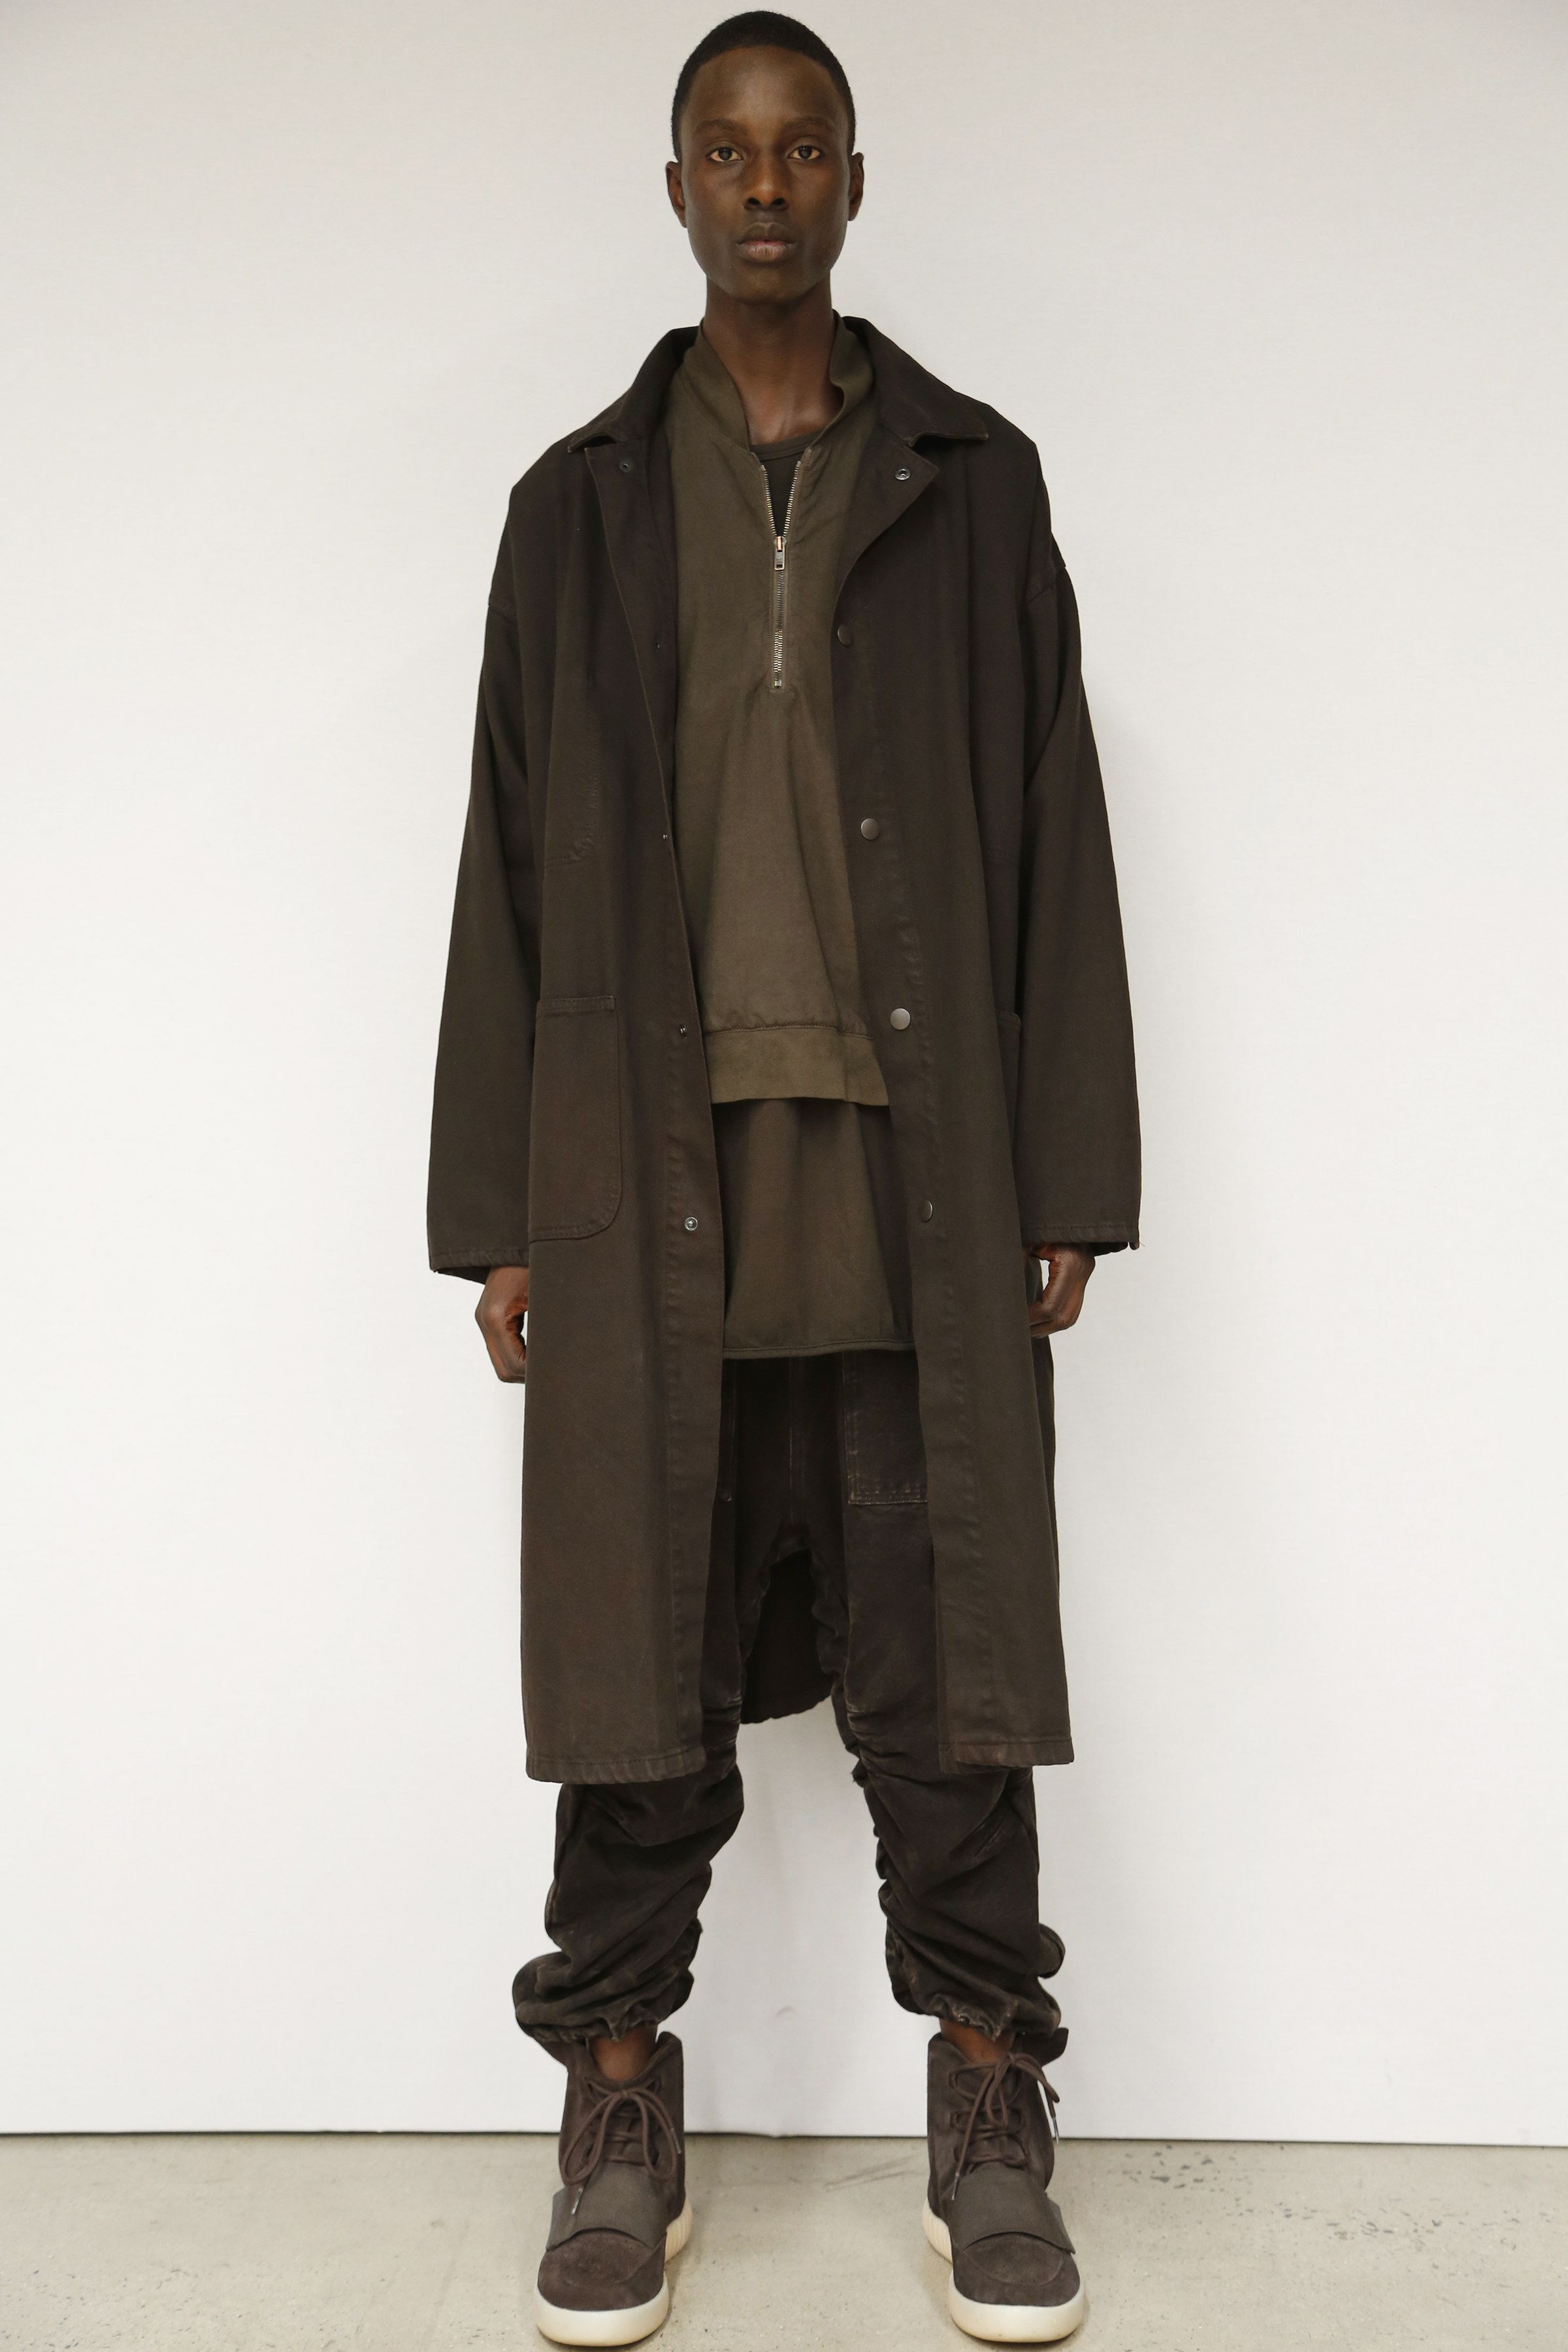 Yeezy 2 Collection Season HereEditorials Kanye West's See Entire 5Rj3AL4